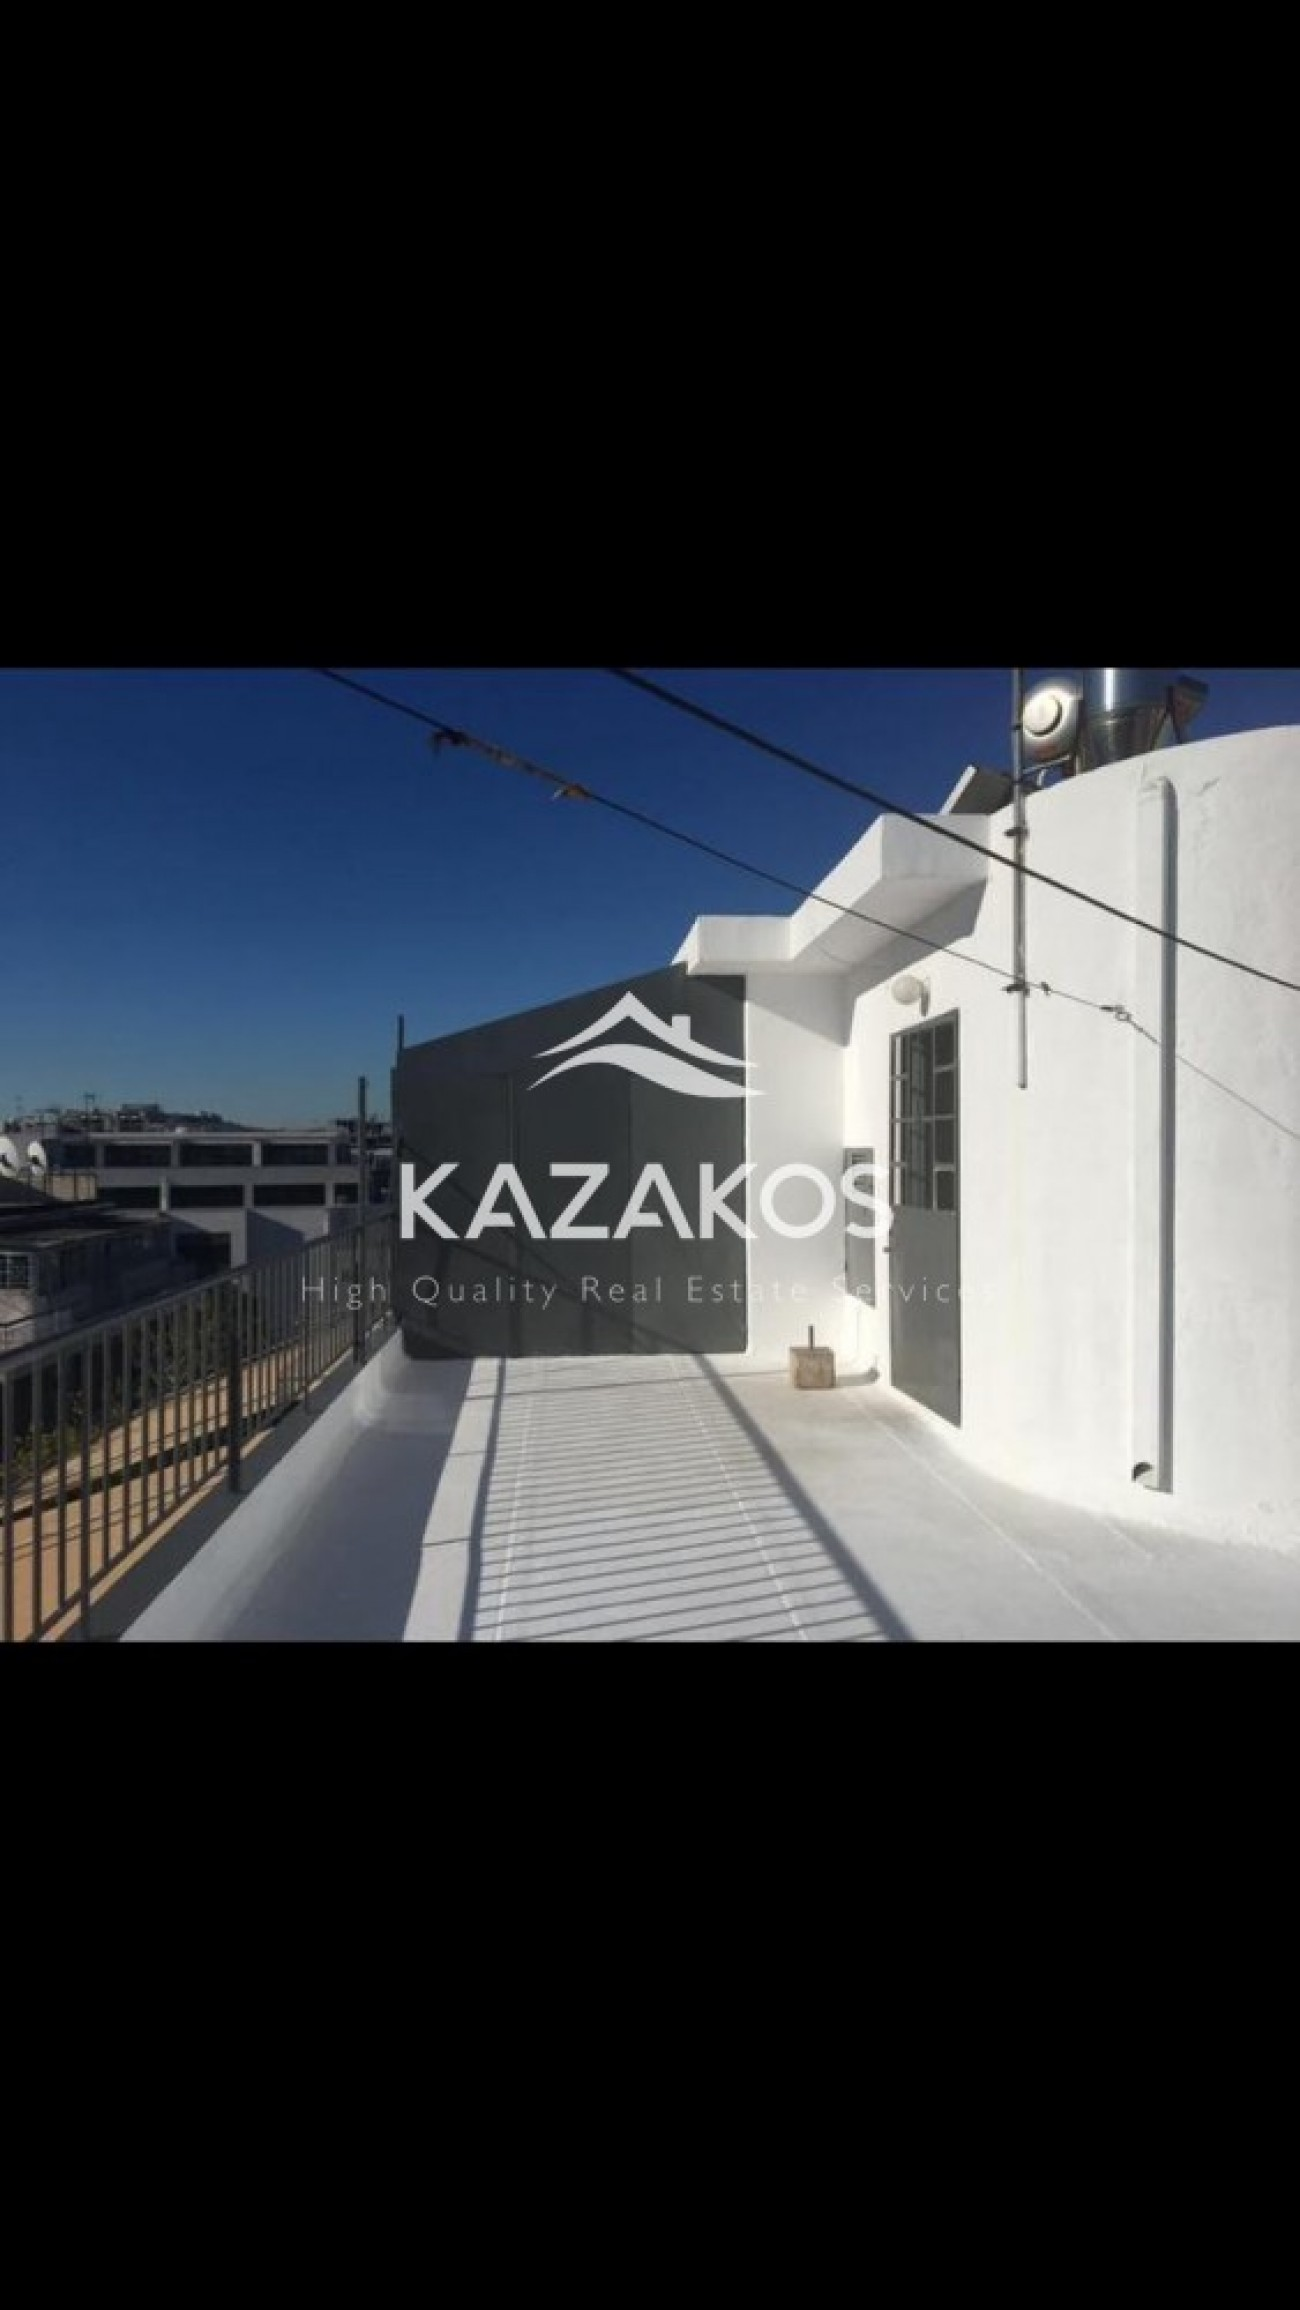 Studio for Sale in Larissa Station, Athens City Center, Greece